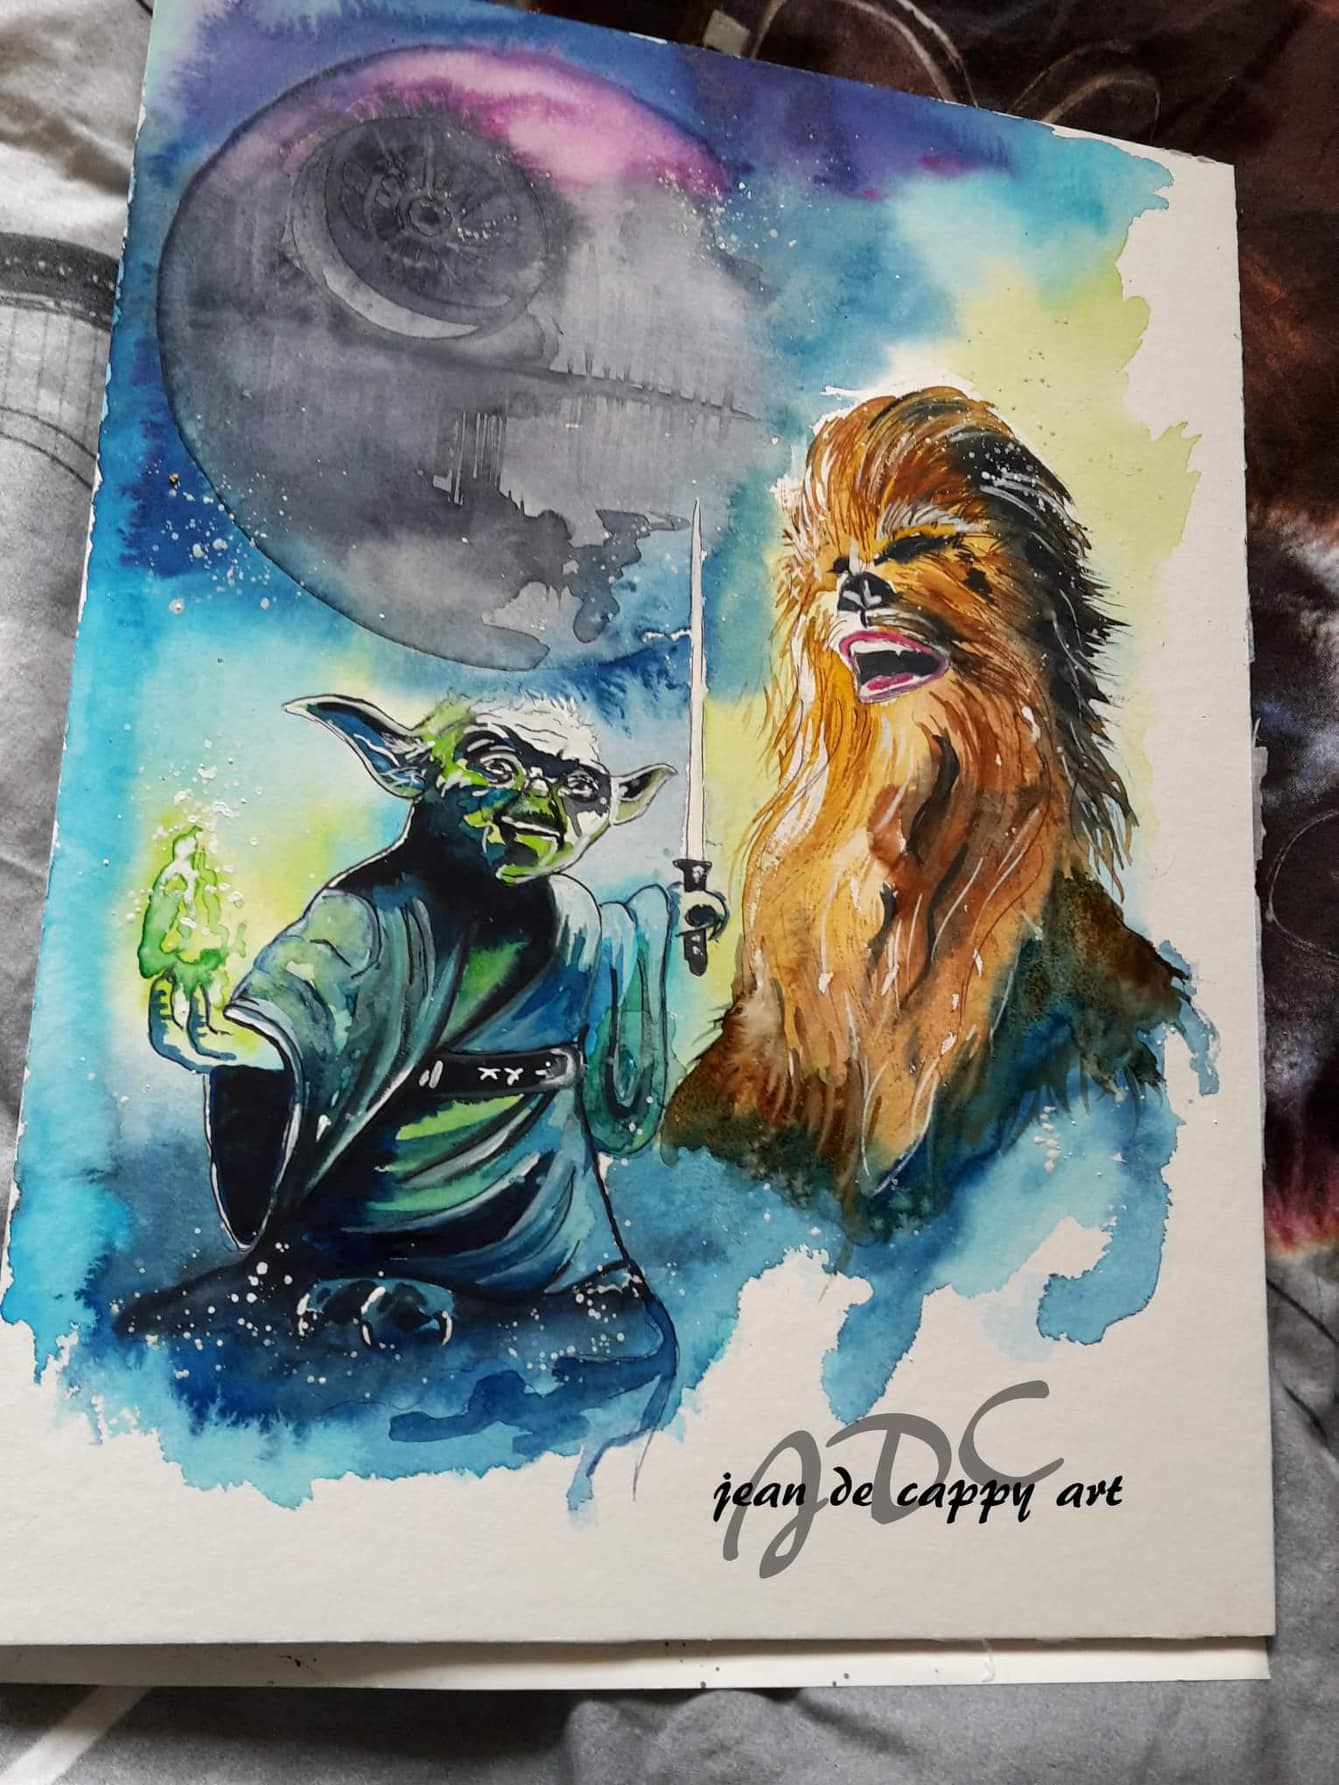 Star wars - Episode VI - Return of the Jedi - gemalt von Jean De Cappy Art